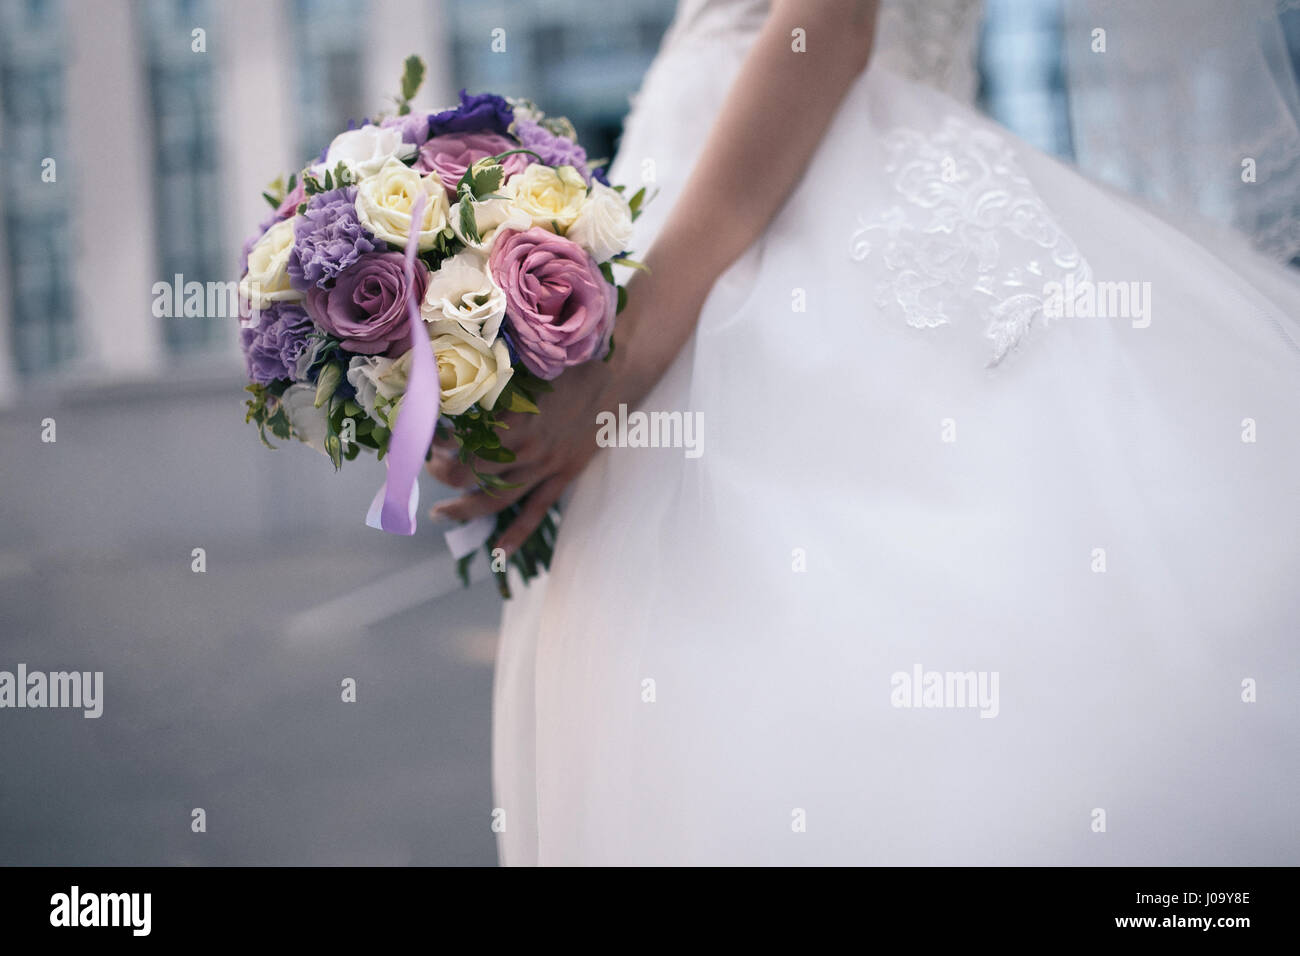 A Wedding Bouquet Of Purple And White Flowers In The Hands Of The